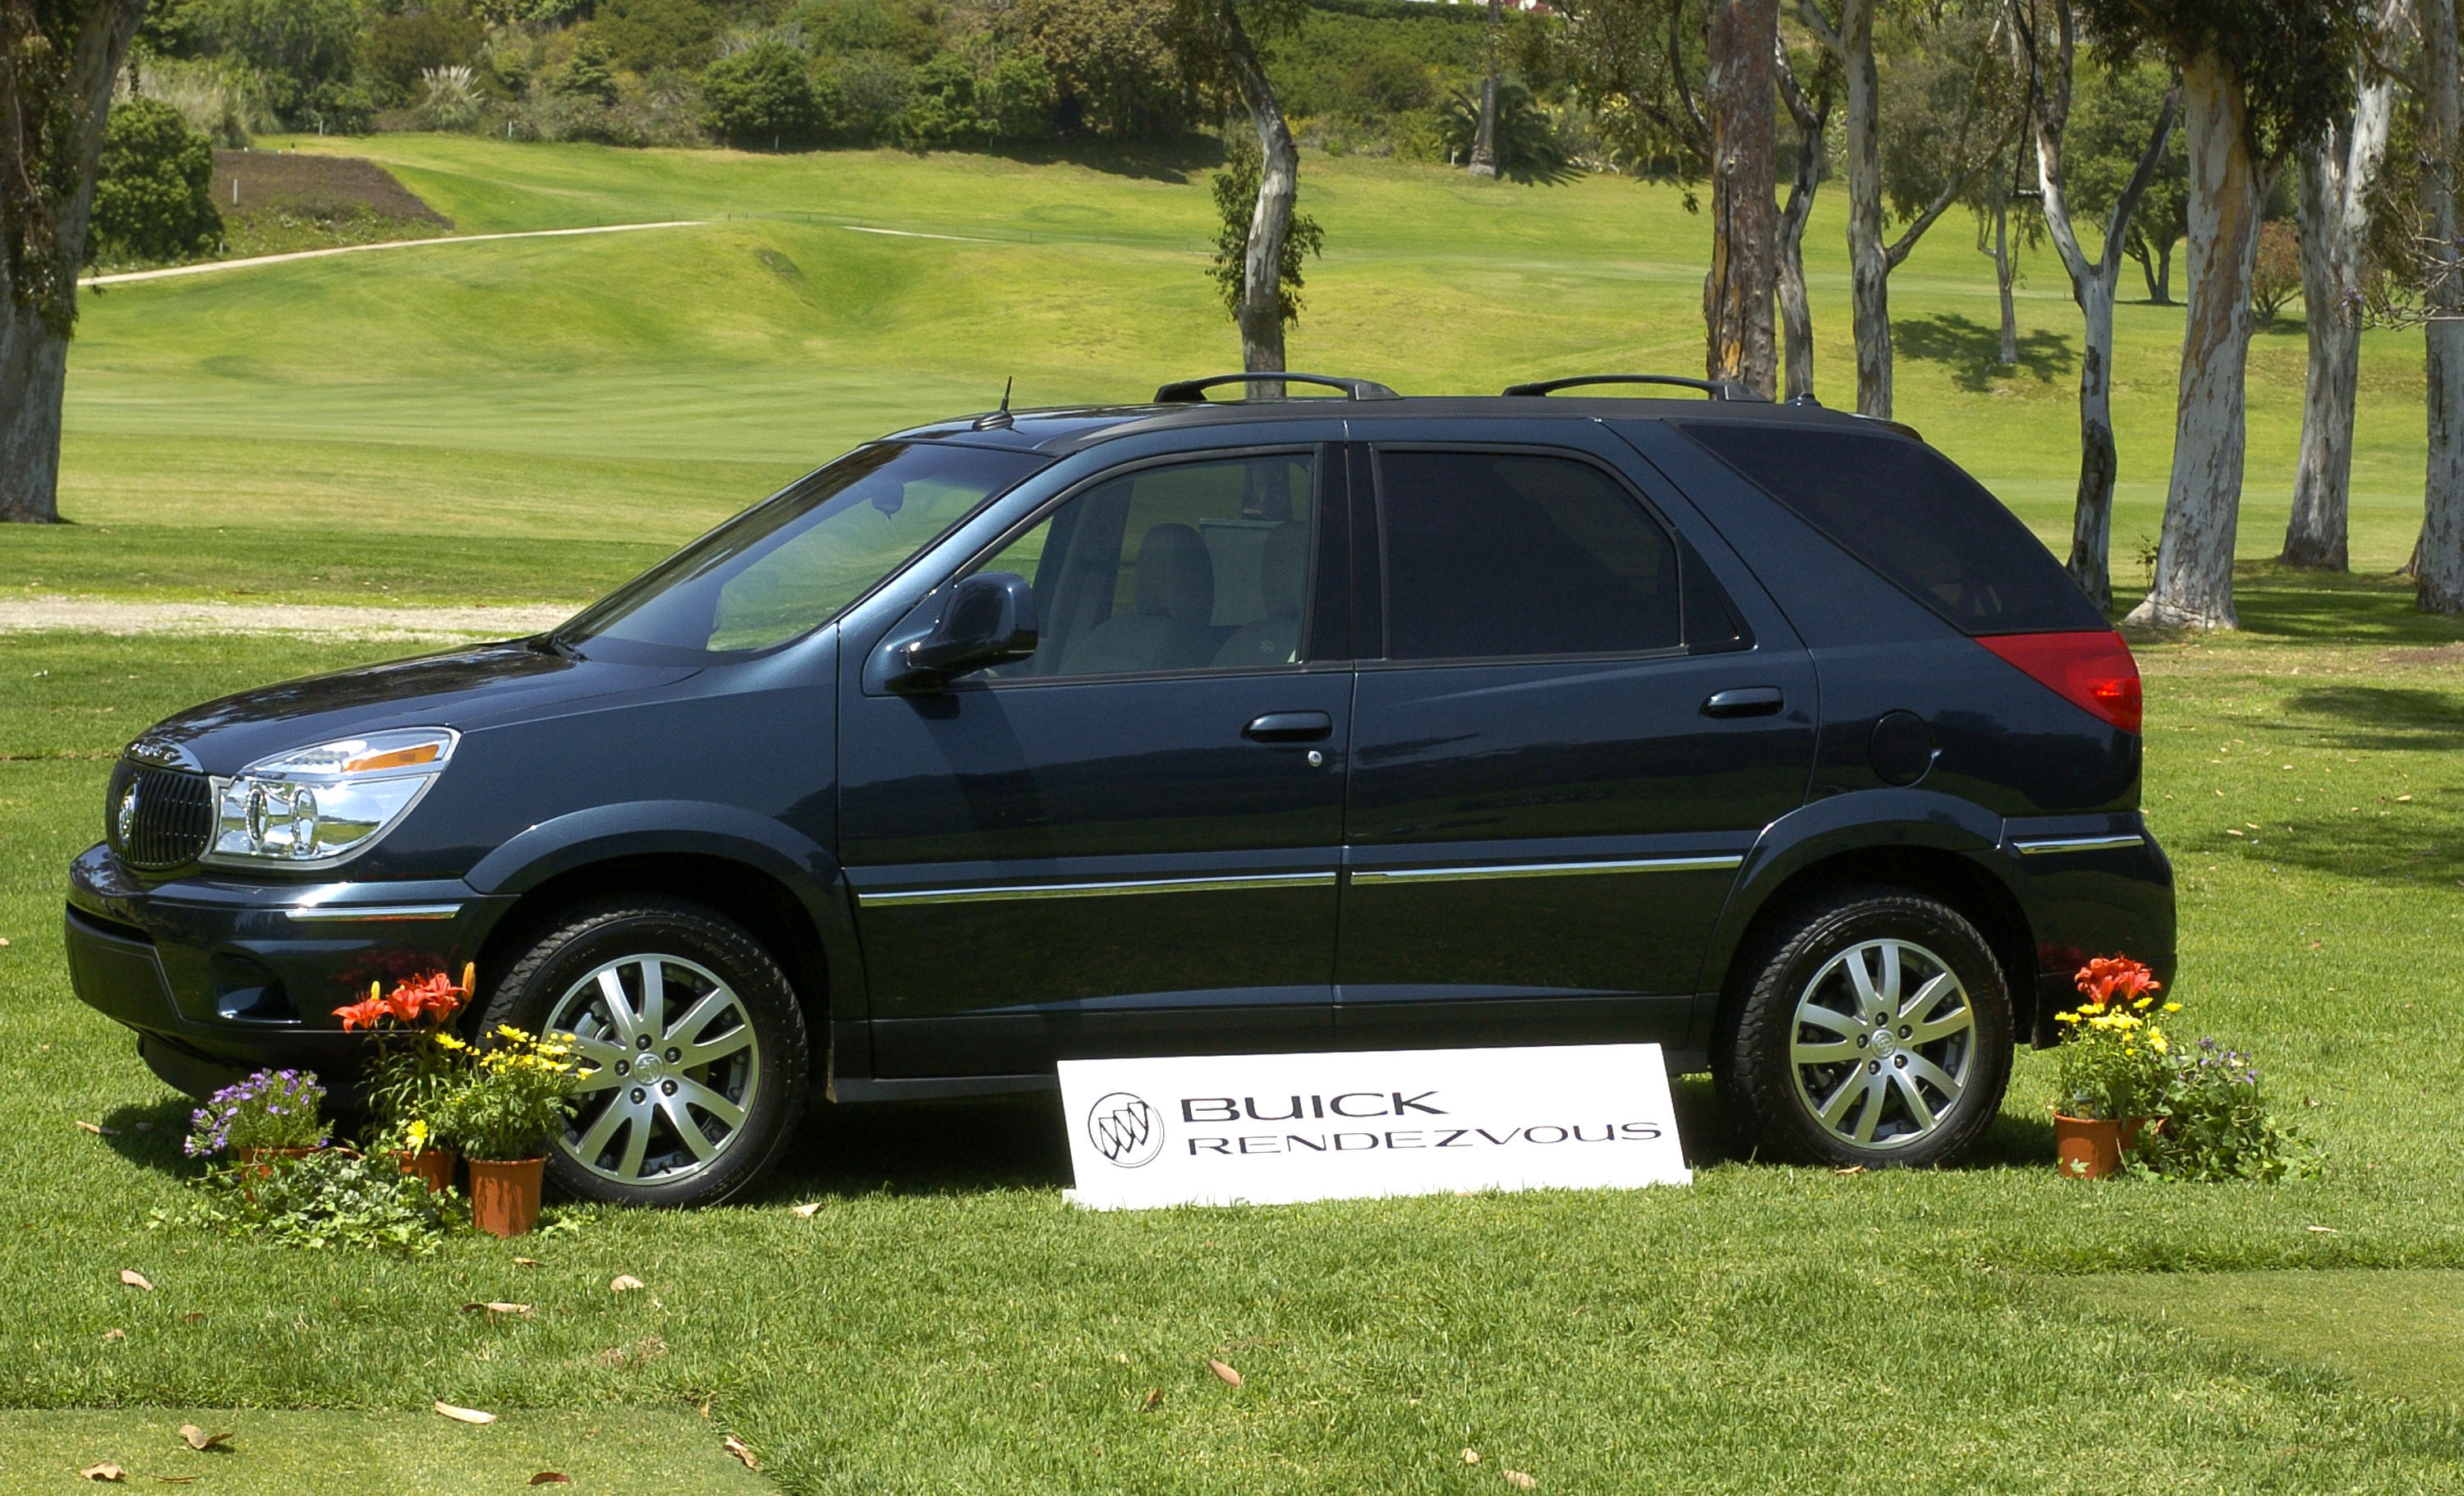 A Buick Rendezvous on display in the grass